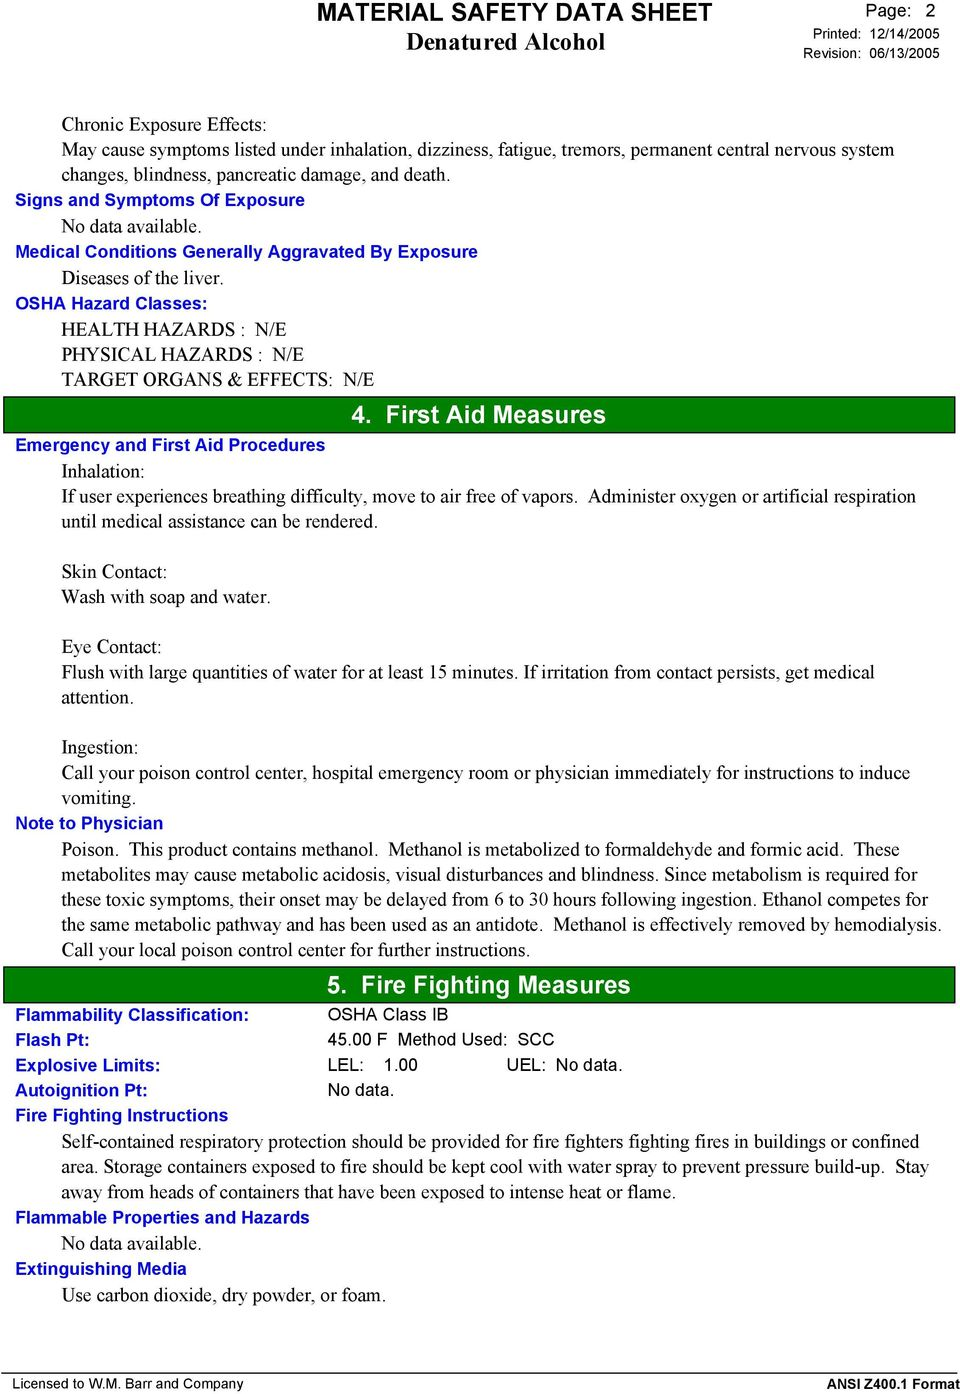 MATERIAL SAFETY DATA SHEET Denatured Alcohol  1  Product and